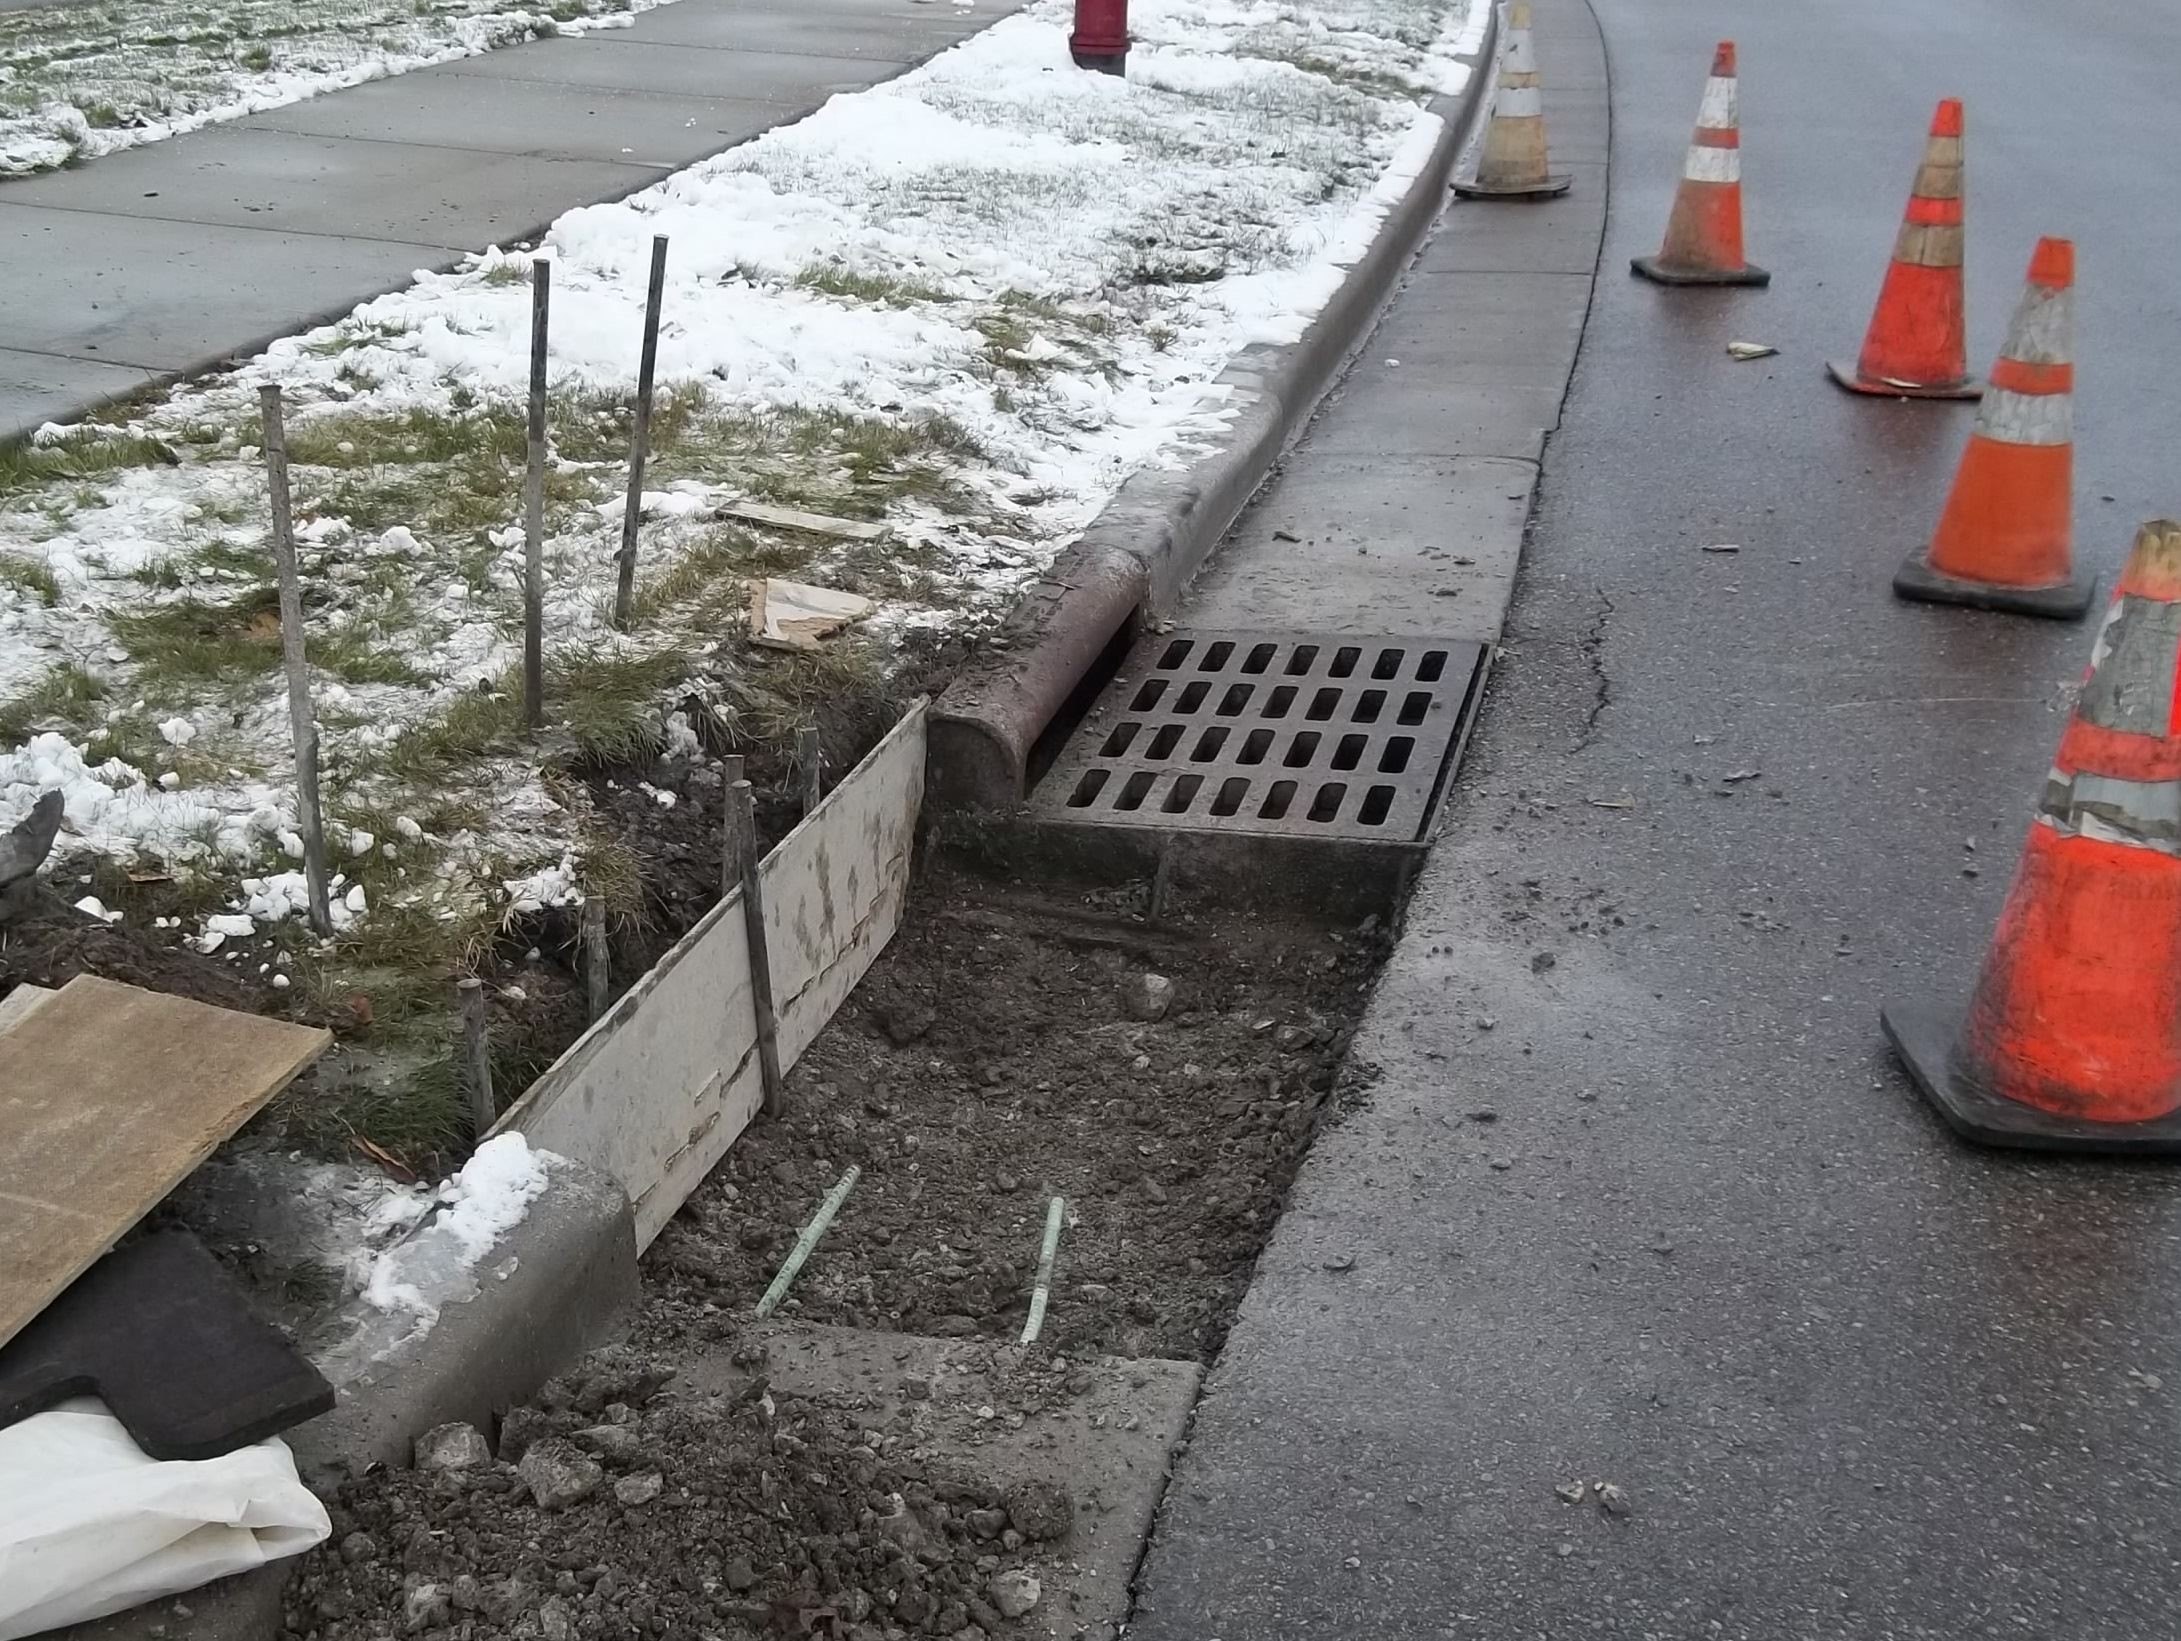 Curb and Gutter Under Construction